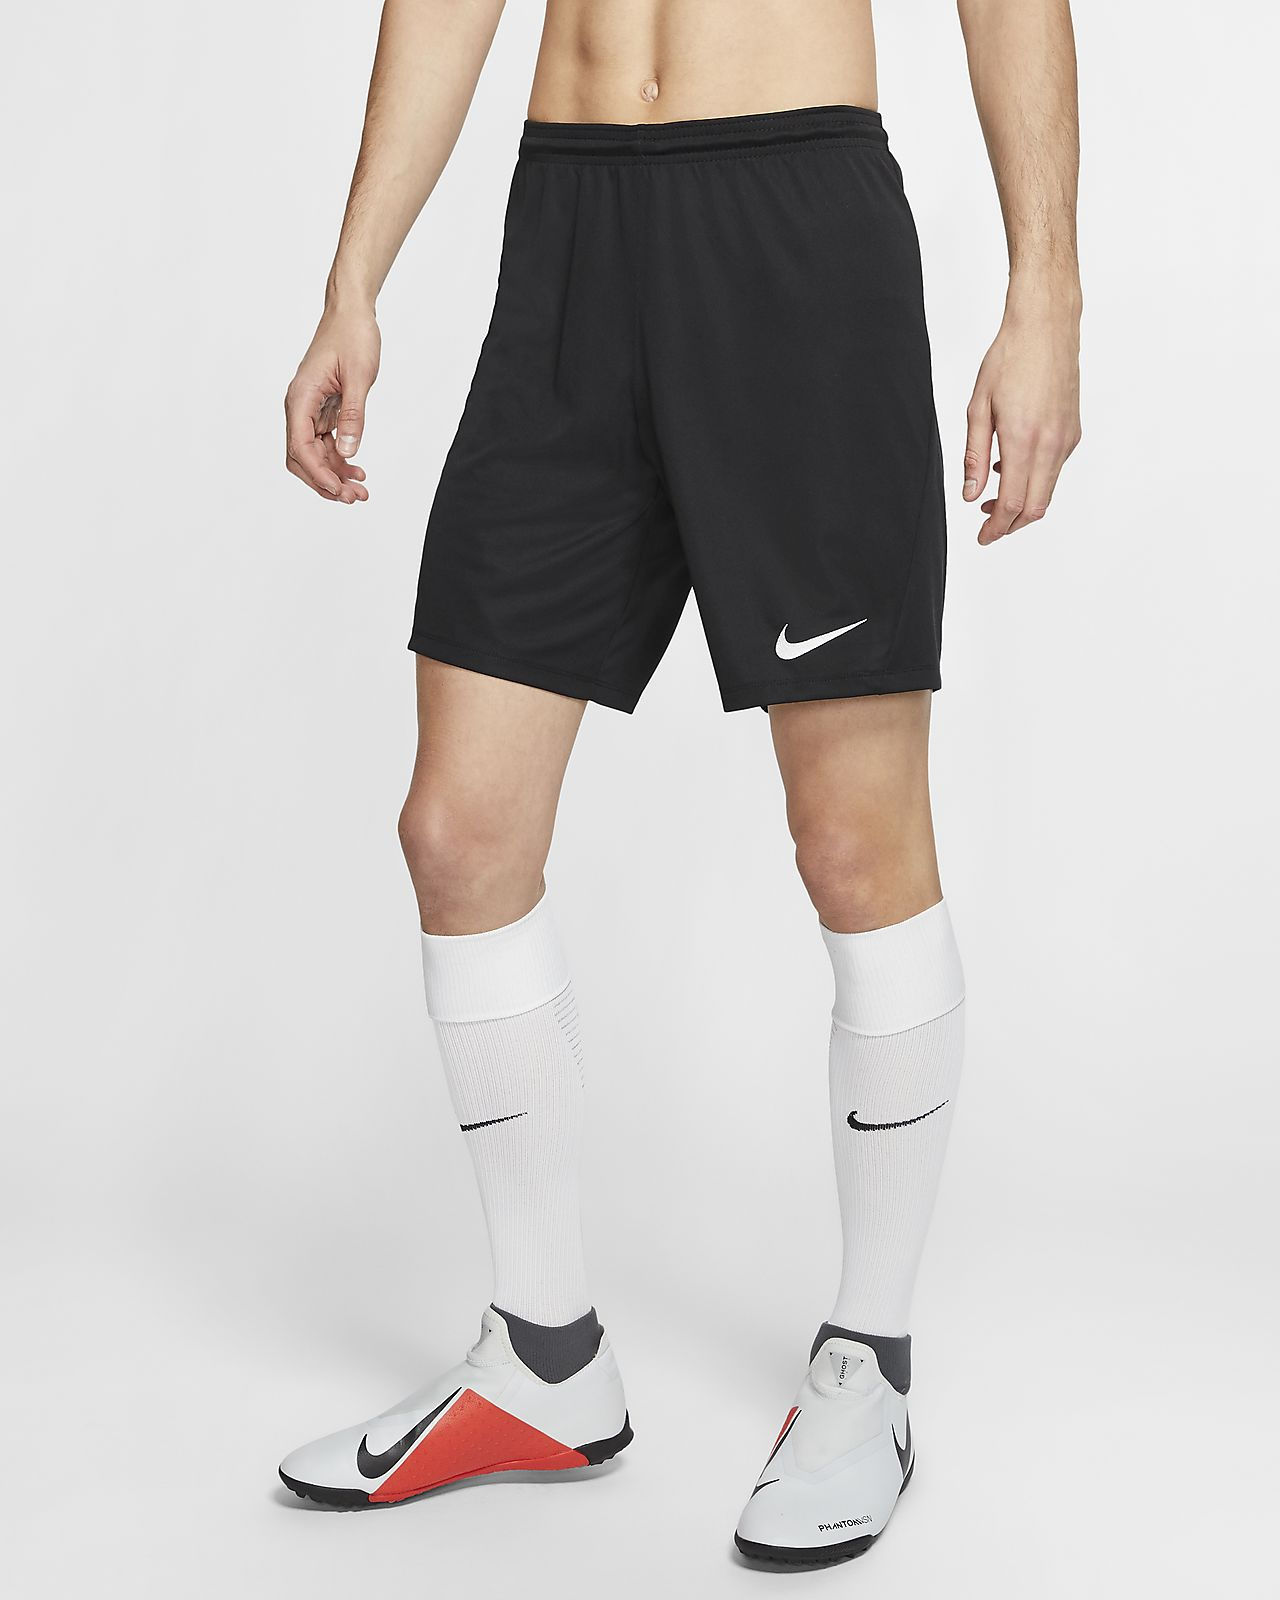 Nike Dri-FIT Park 3 Men's Knit Football Shorts